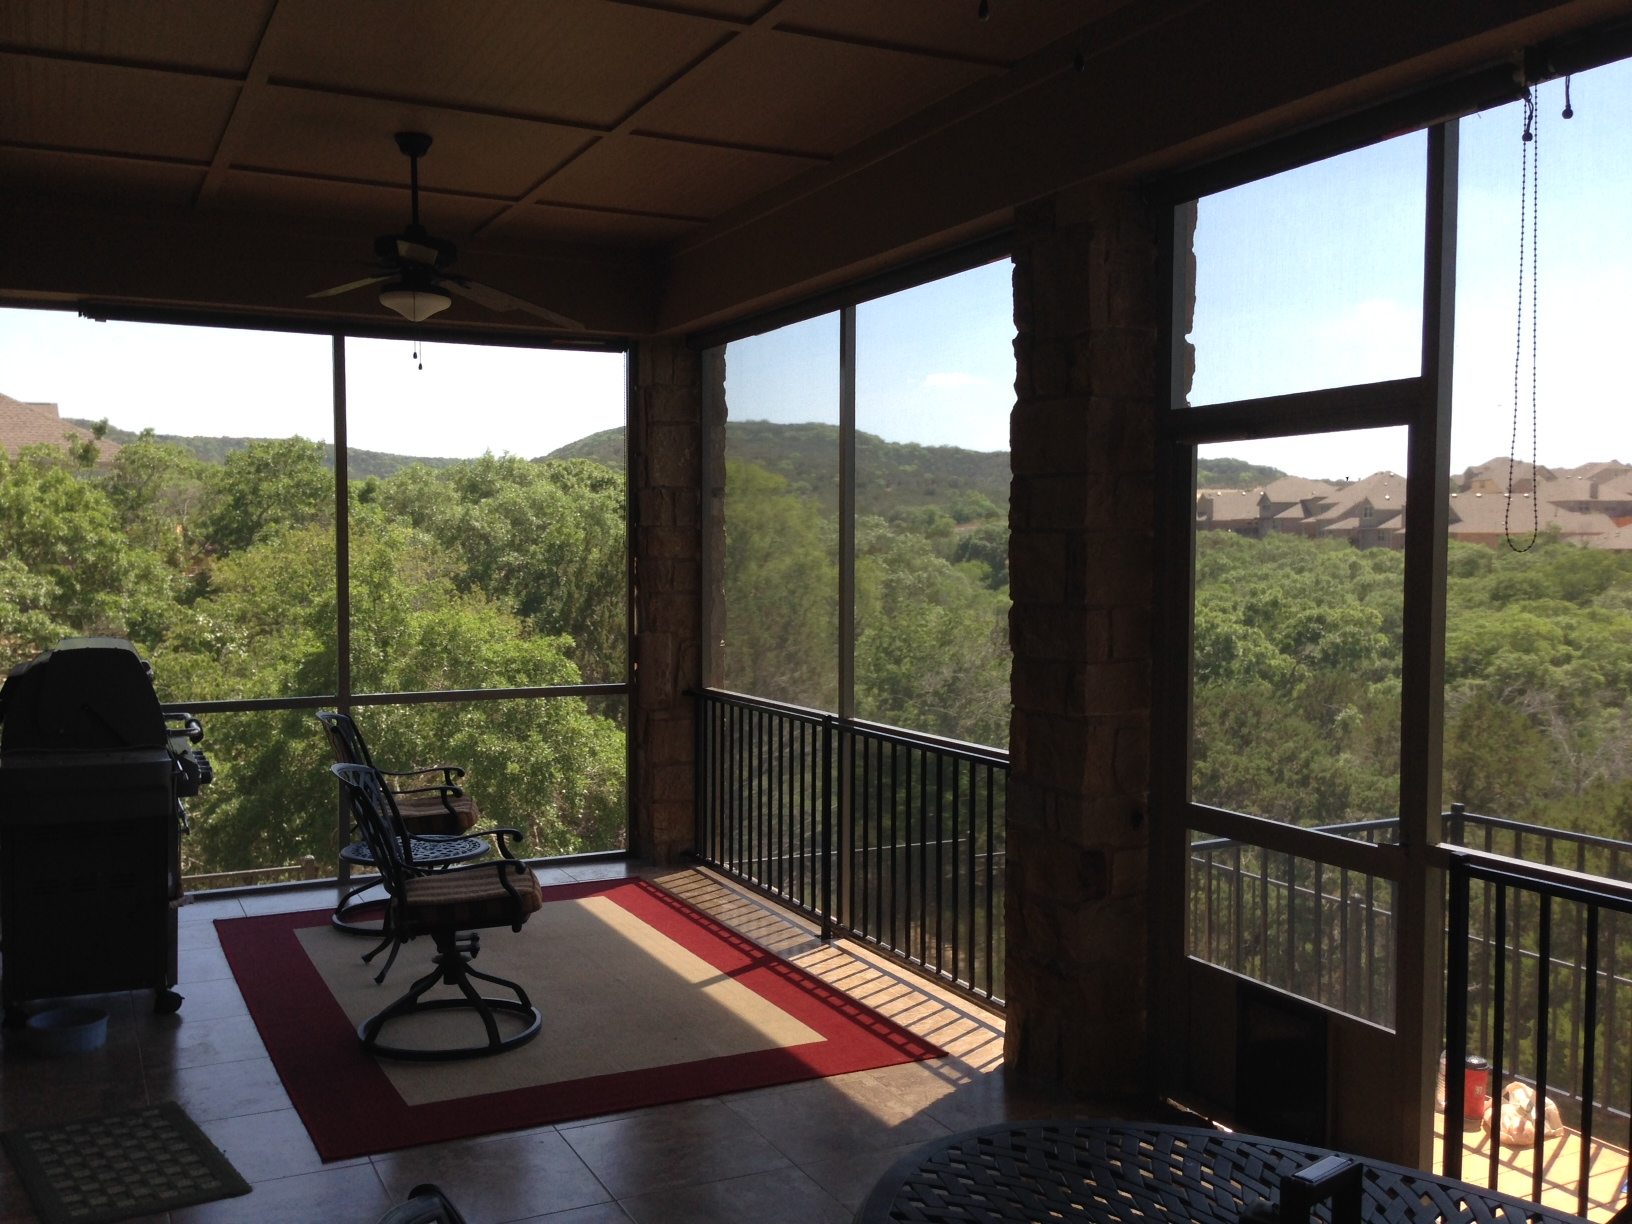 Exterior: Solar Screen, Fogged Window, And